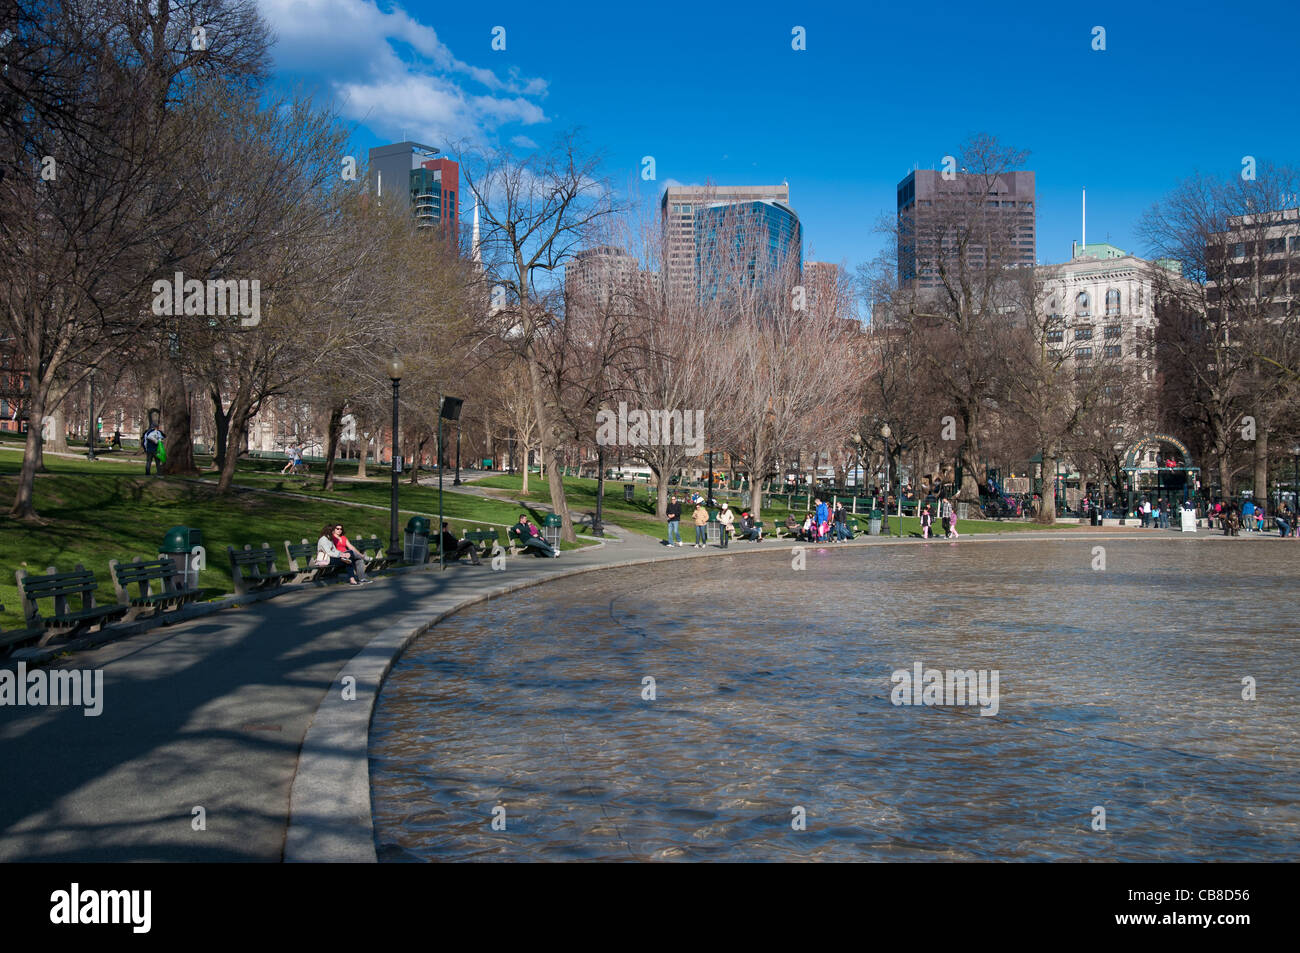 The Boston Common Frog Pond and people walking in springtime Stock Photo